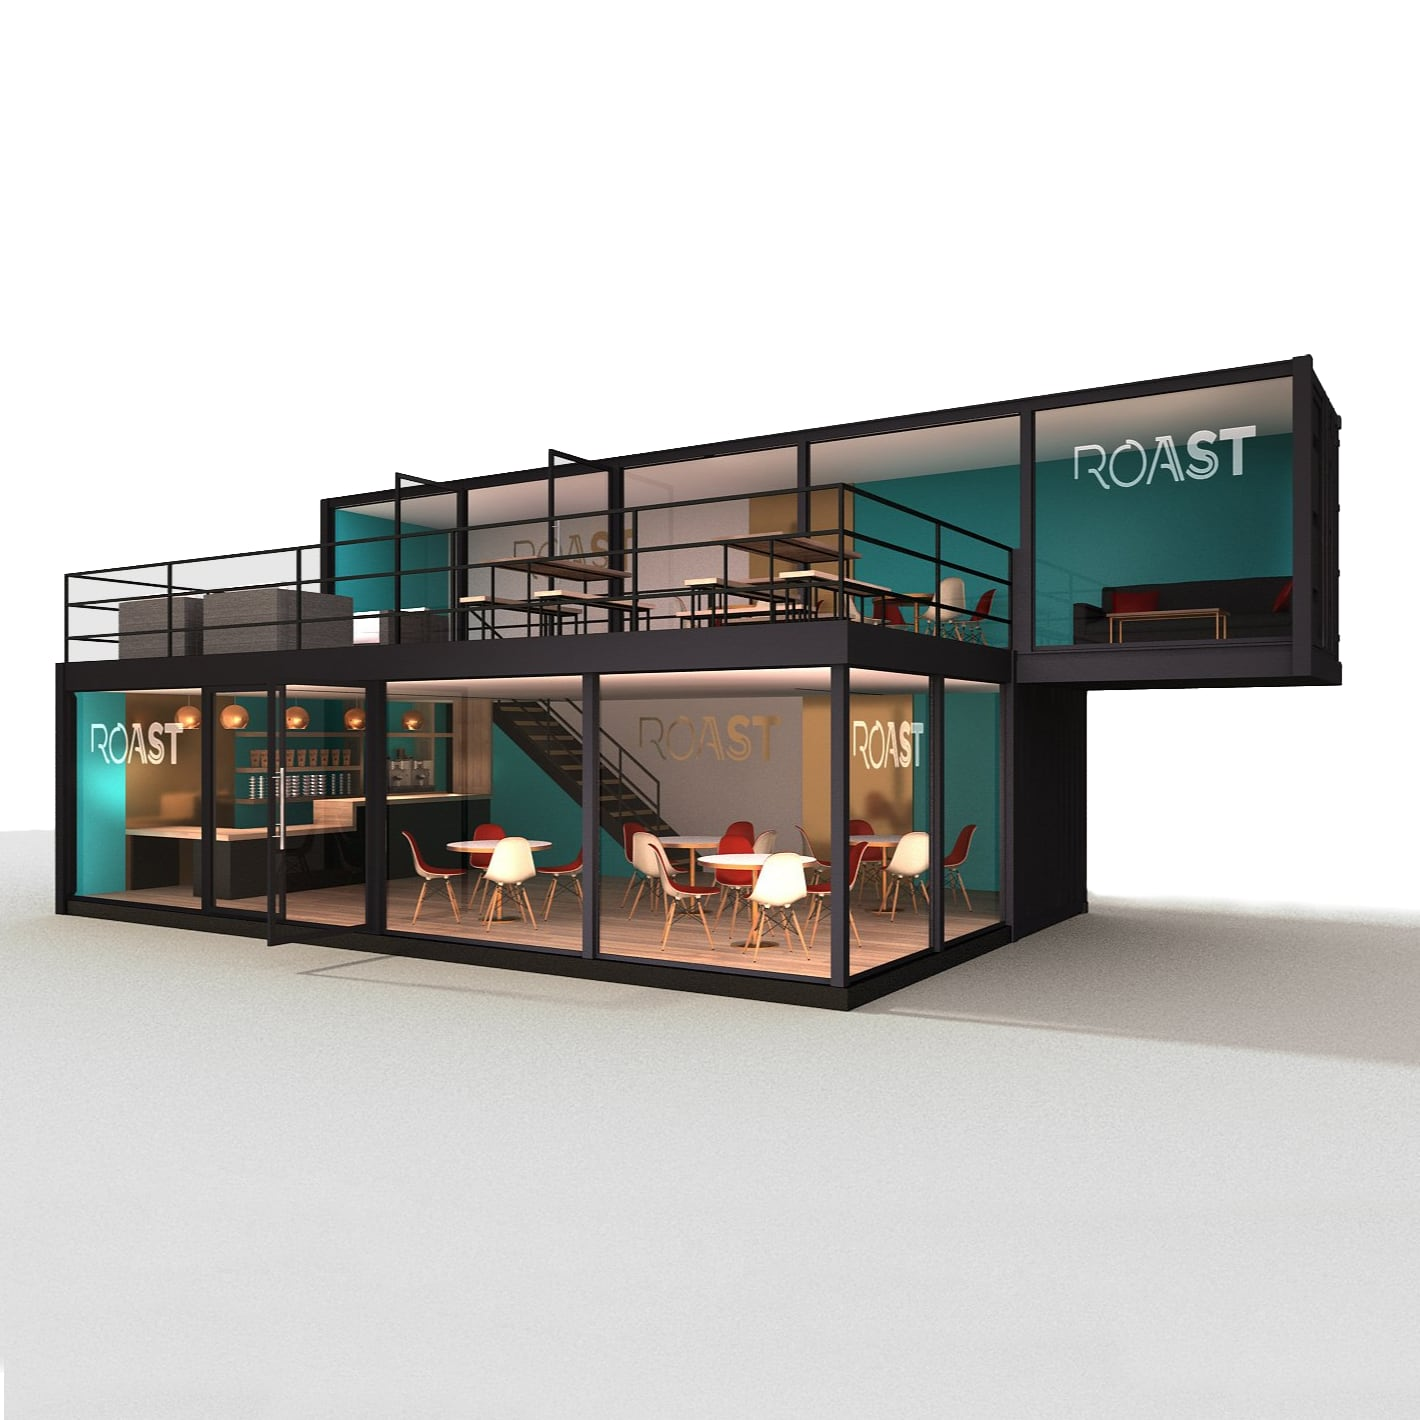 Shipping Container Cafe 10 X 10 From 9 950 Plus Gst Barista Technology Australia